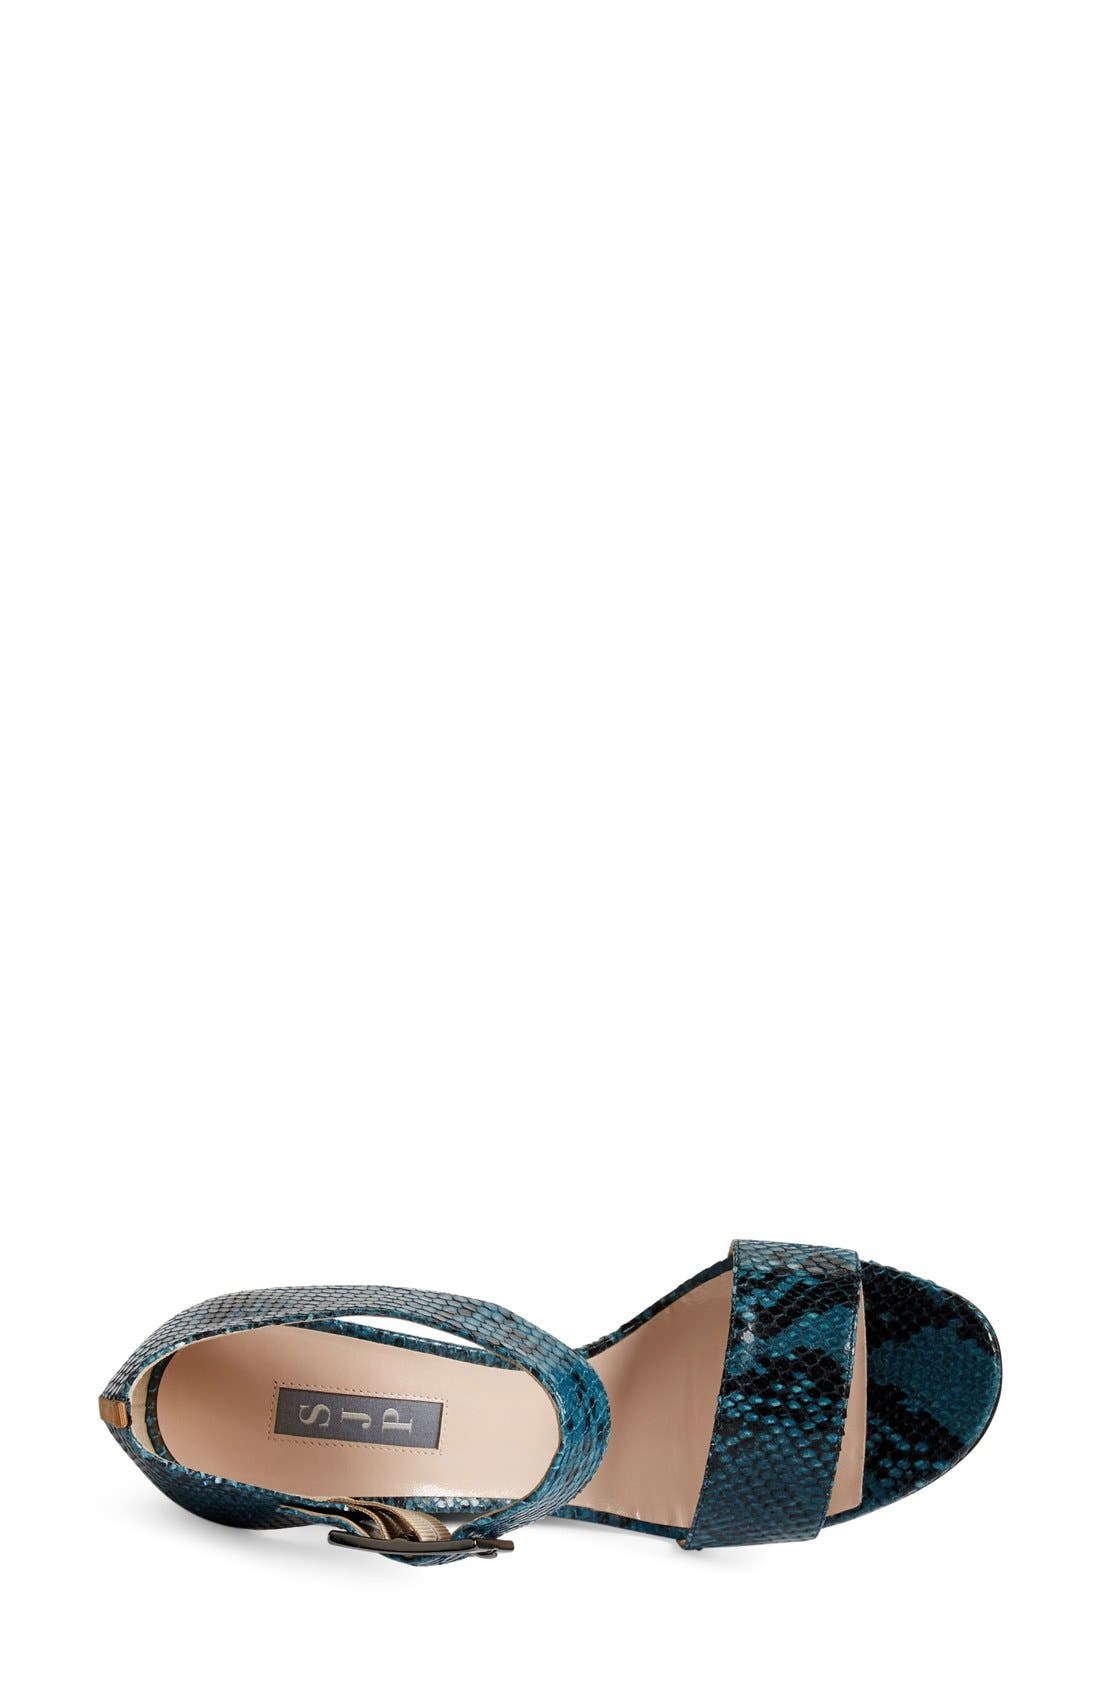 Alternate Image 3  - SJP by Sarah Jessica Parker 'Tate' Wedge Sandal (Women)